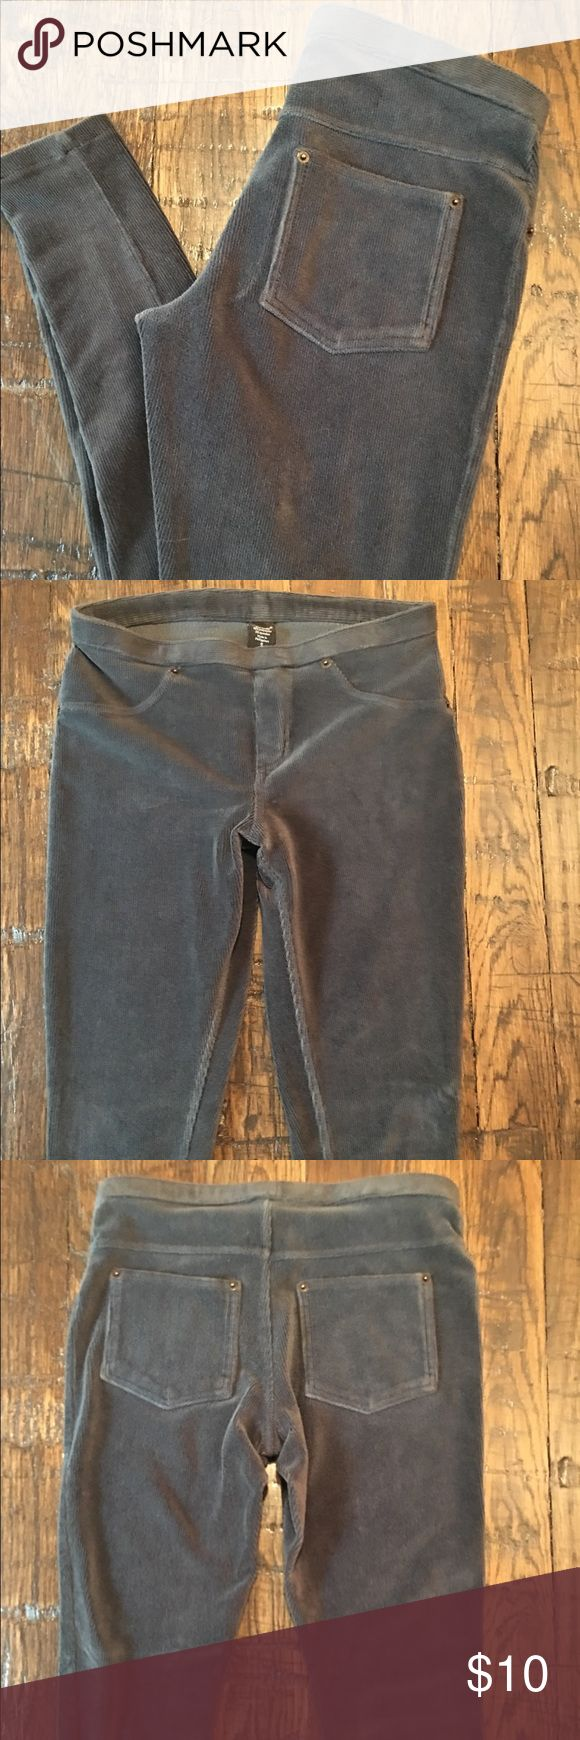 Hue Corduroy Leggings Hue Corduroy leggings in like-new condition. Color is a bluish gray. HUE Pants Leggings